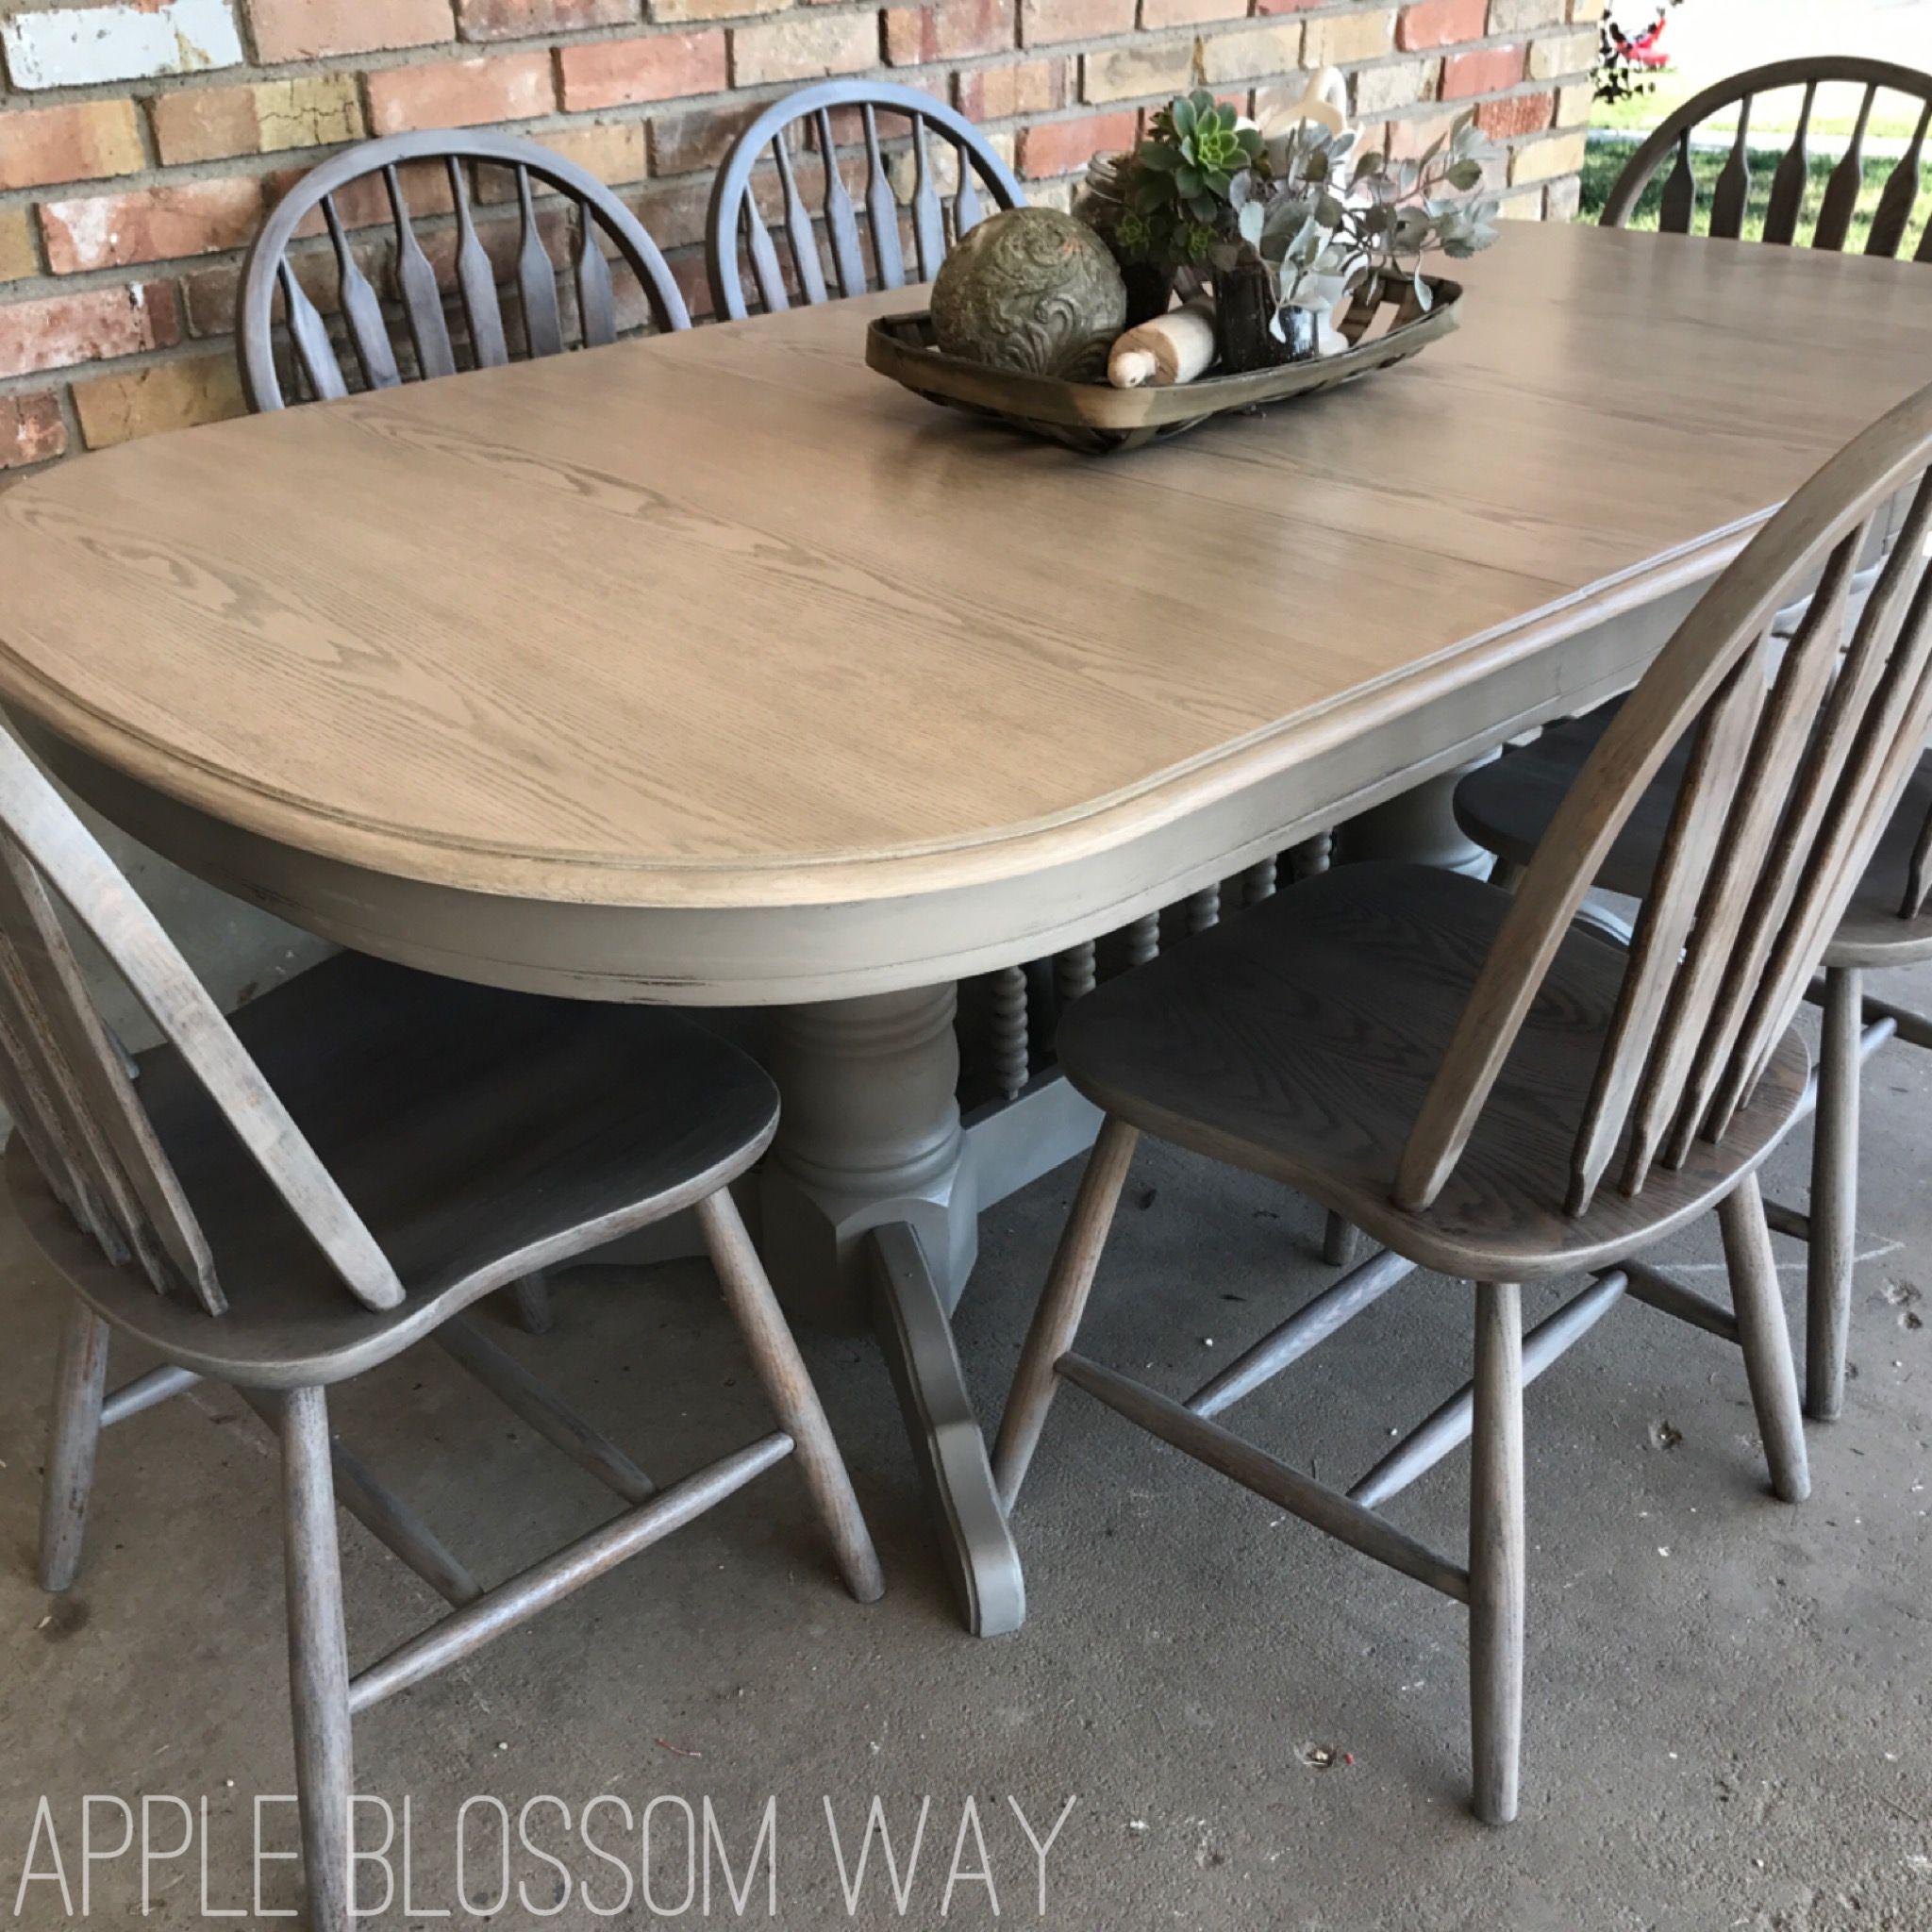 Rustic Grey Washed Oak Table Set Includes 2 Leaves And 6 Chairs Table Base Is Finished In A Lig Oak Dining Furniture White Wash Wood Floors Solid Wood Chairs